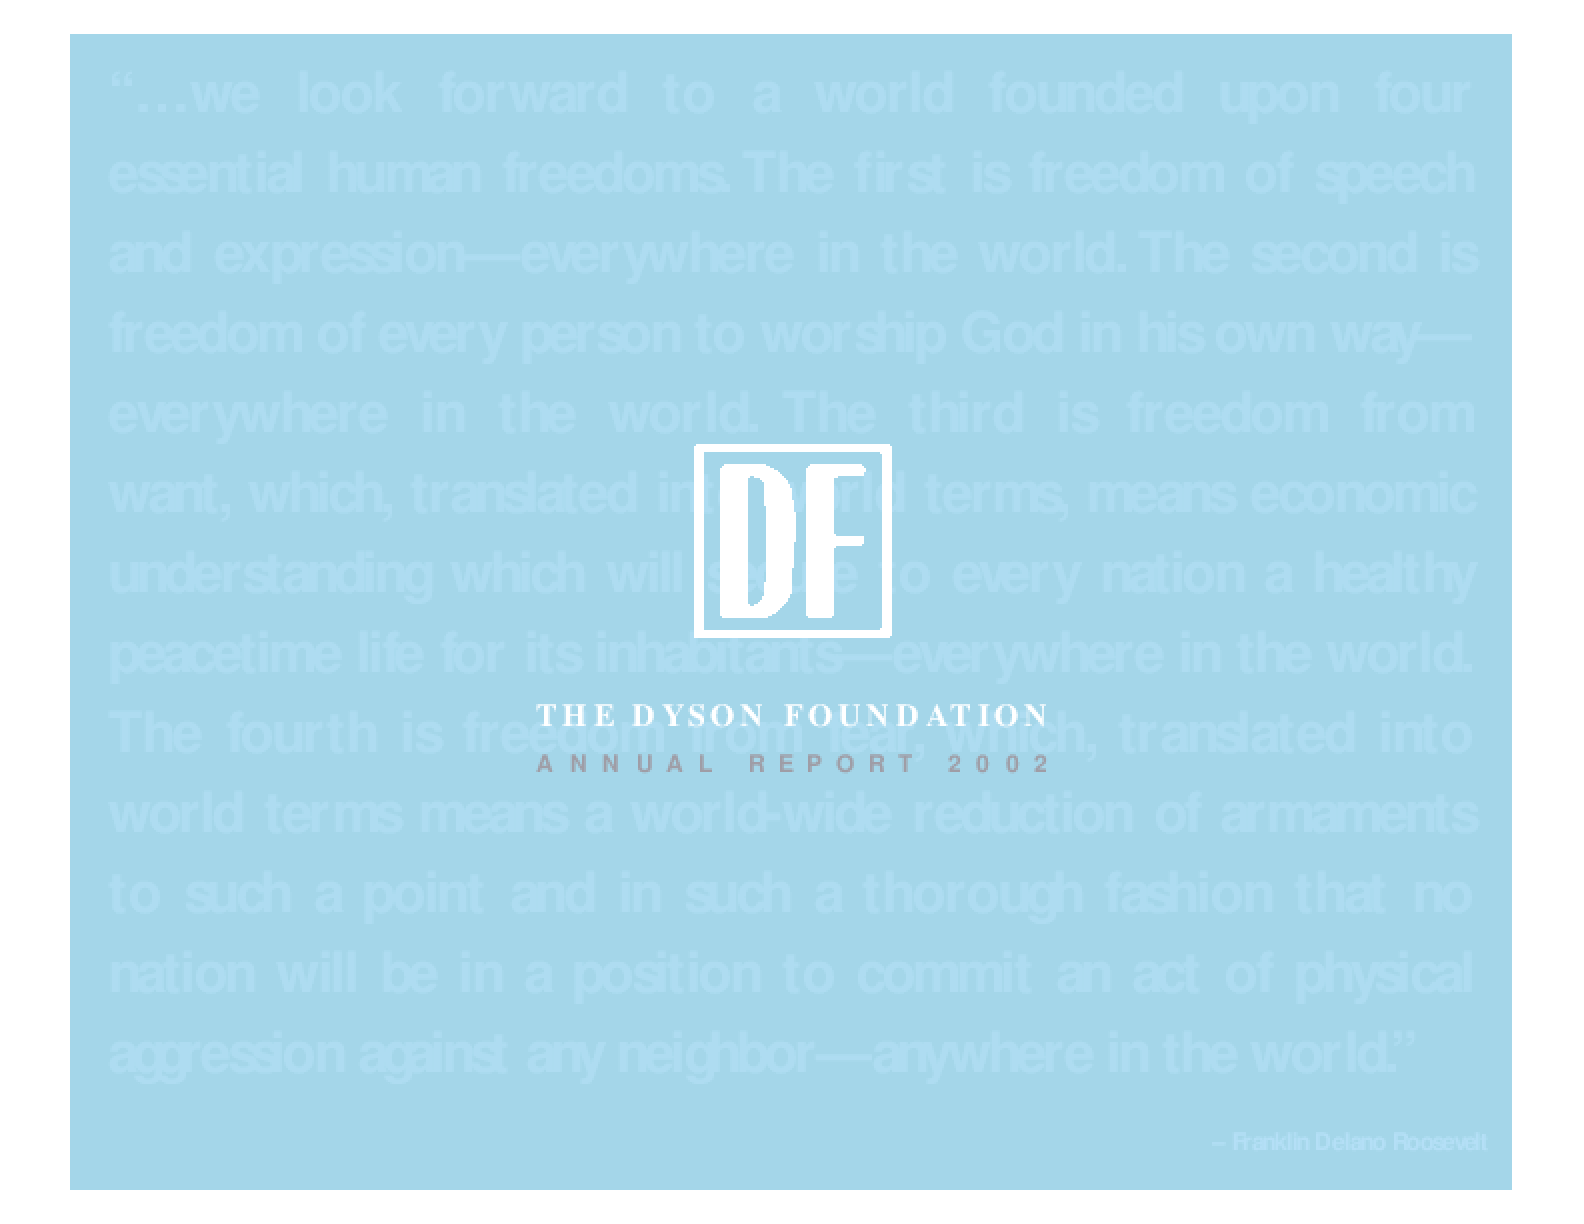 Dyson Foundation - 2002 Annual Report